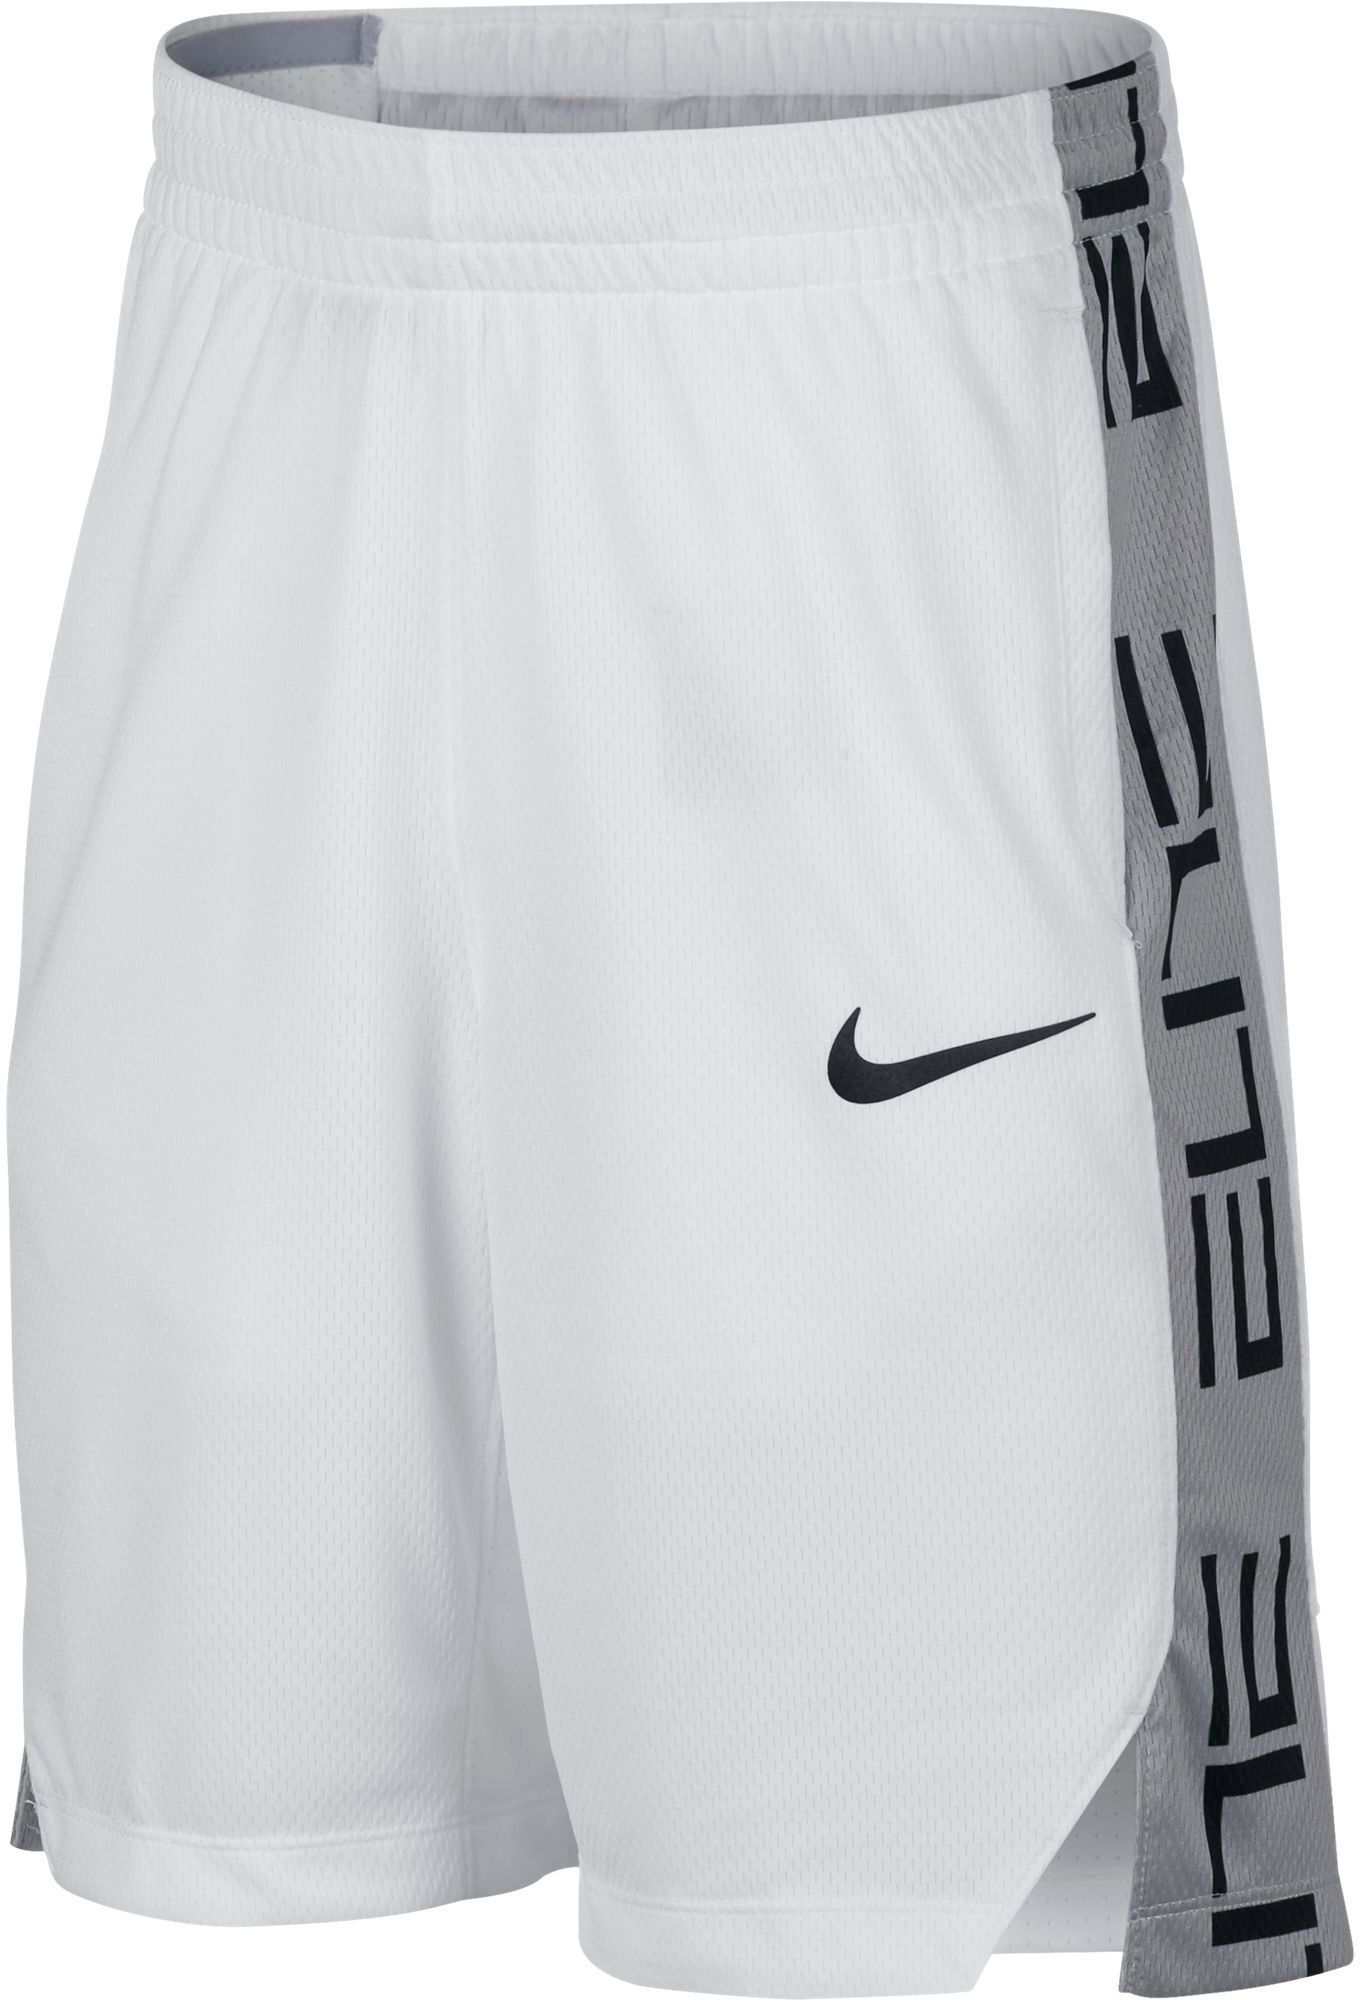 2a39f522d986 Nike Boys  Dry Elite Graphic Basketball Shorts